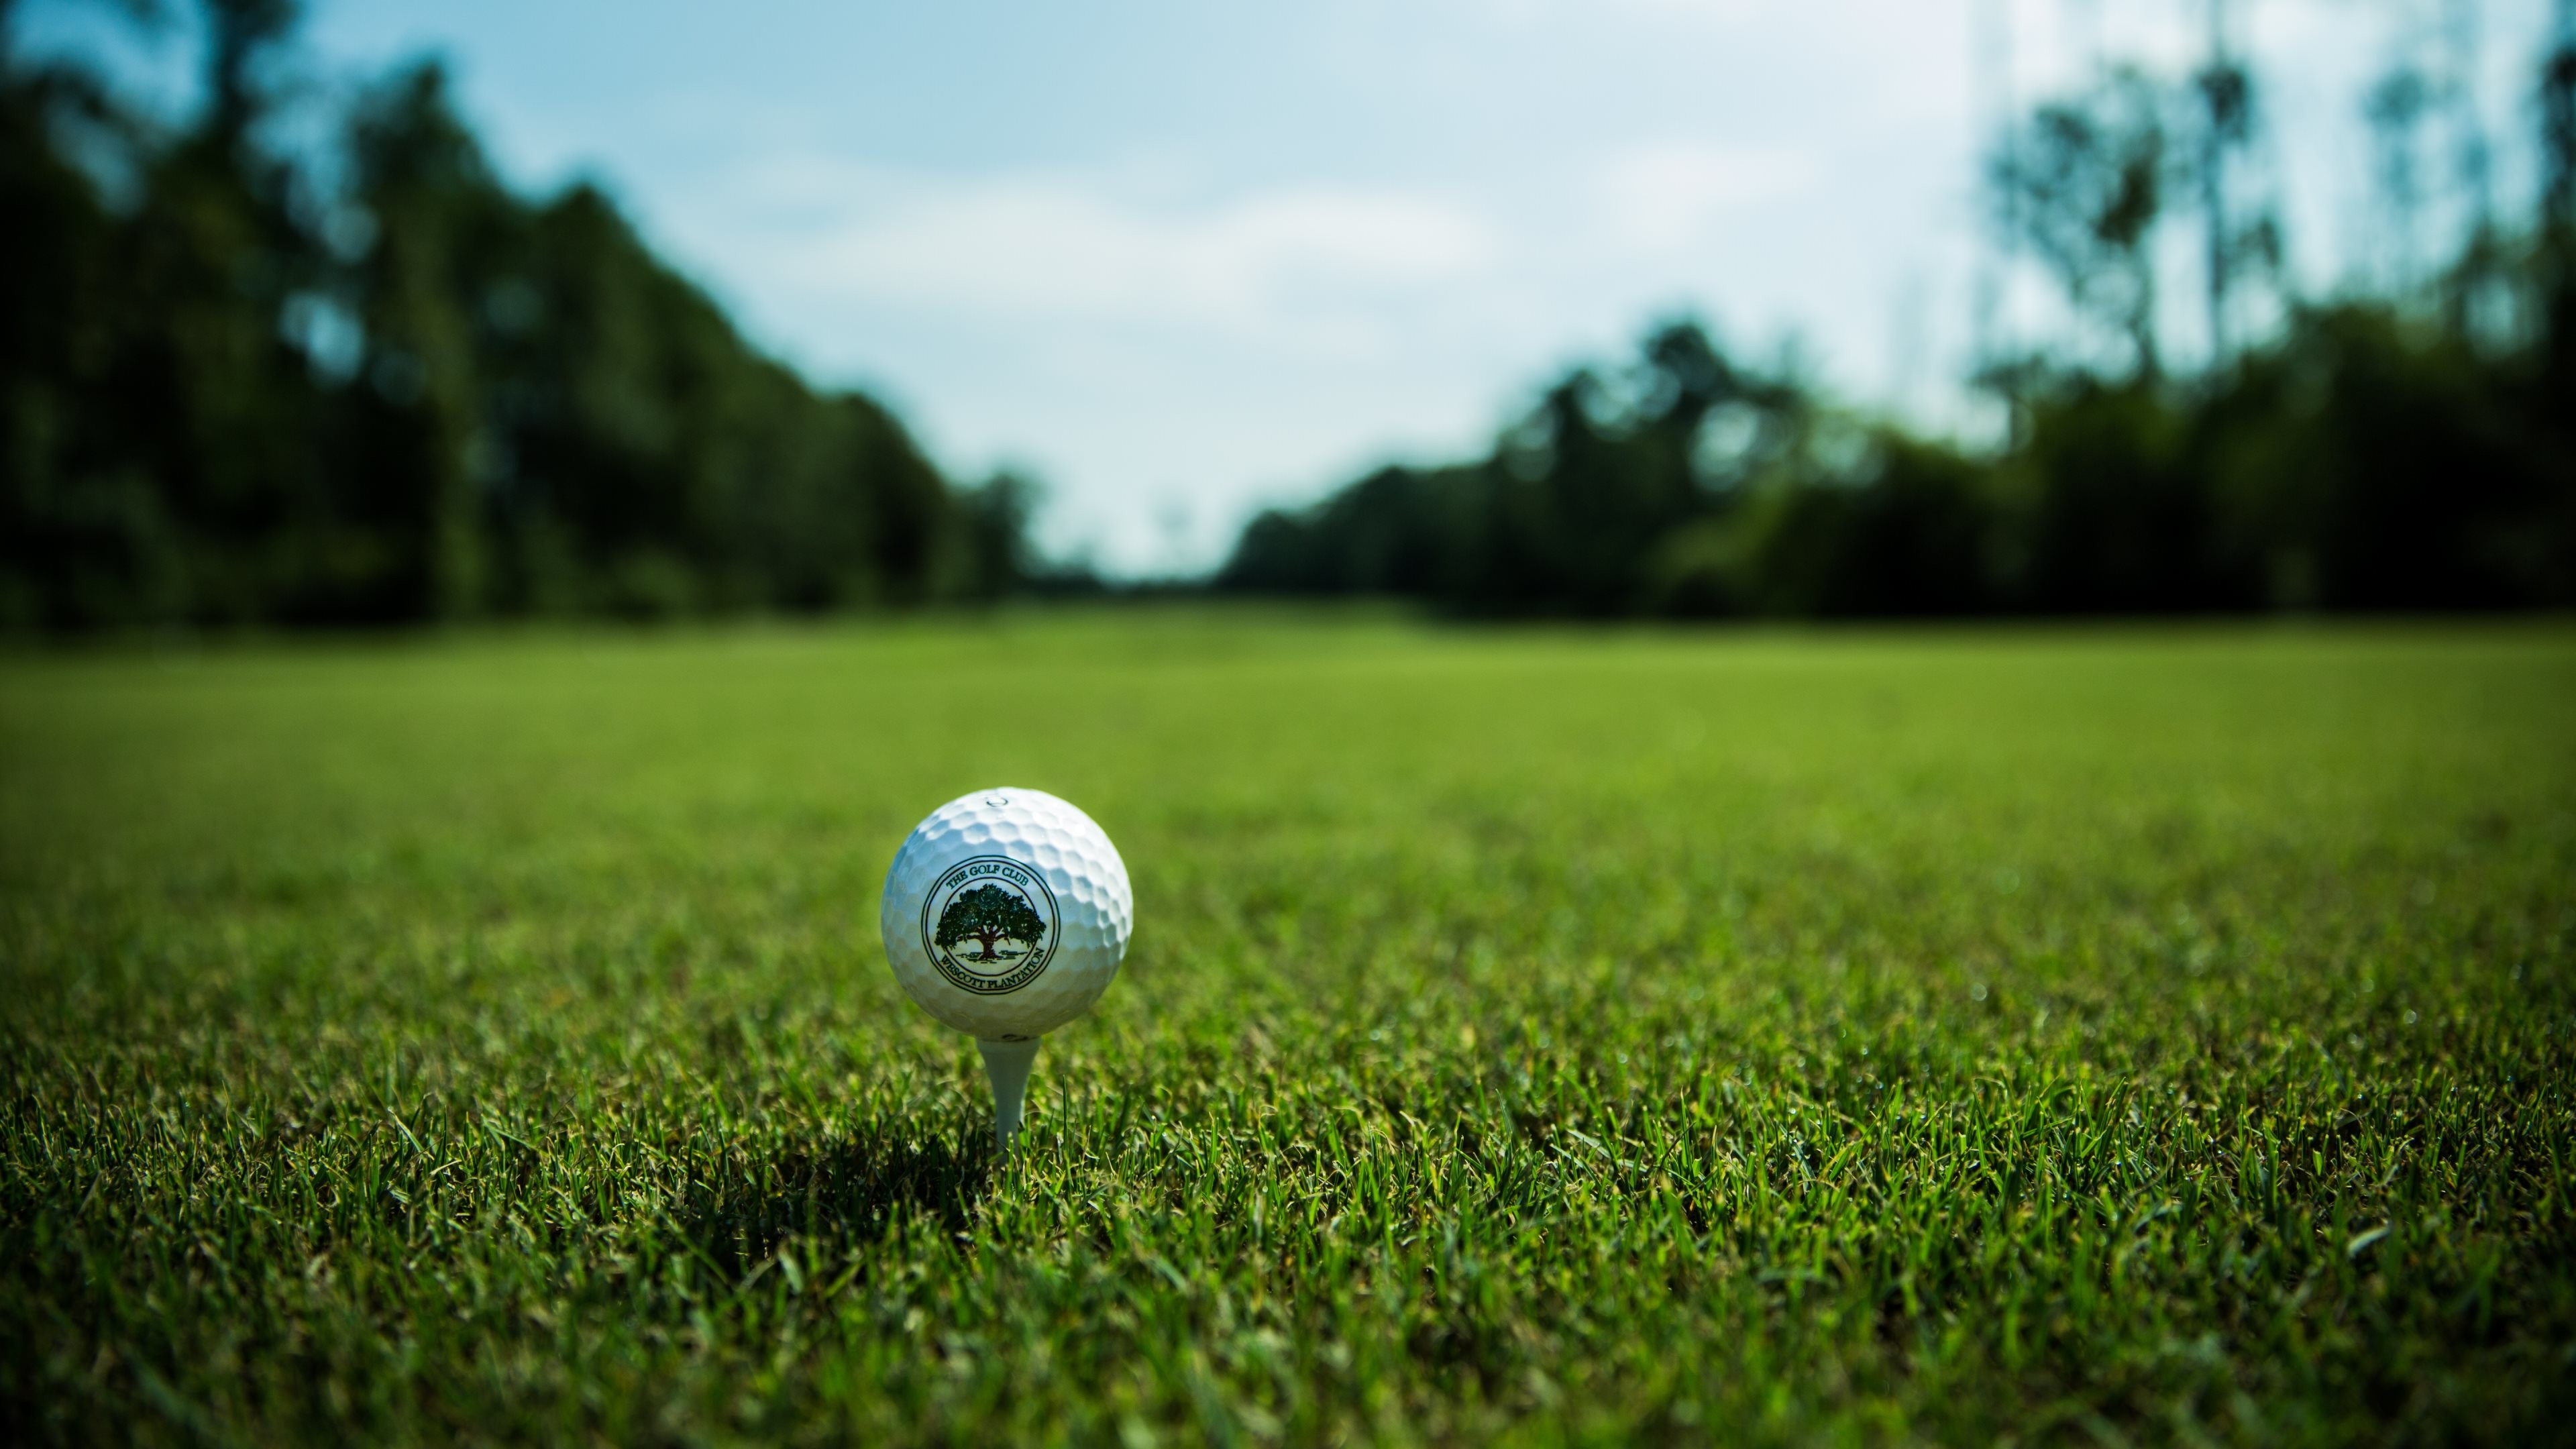 4K HD Wallpaper: The ball from the golf course